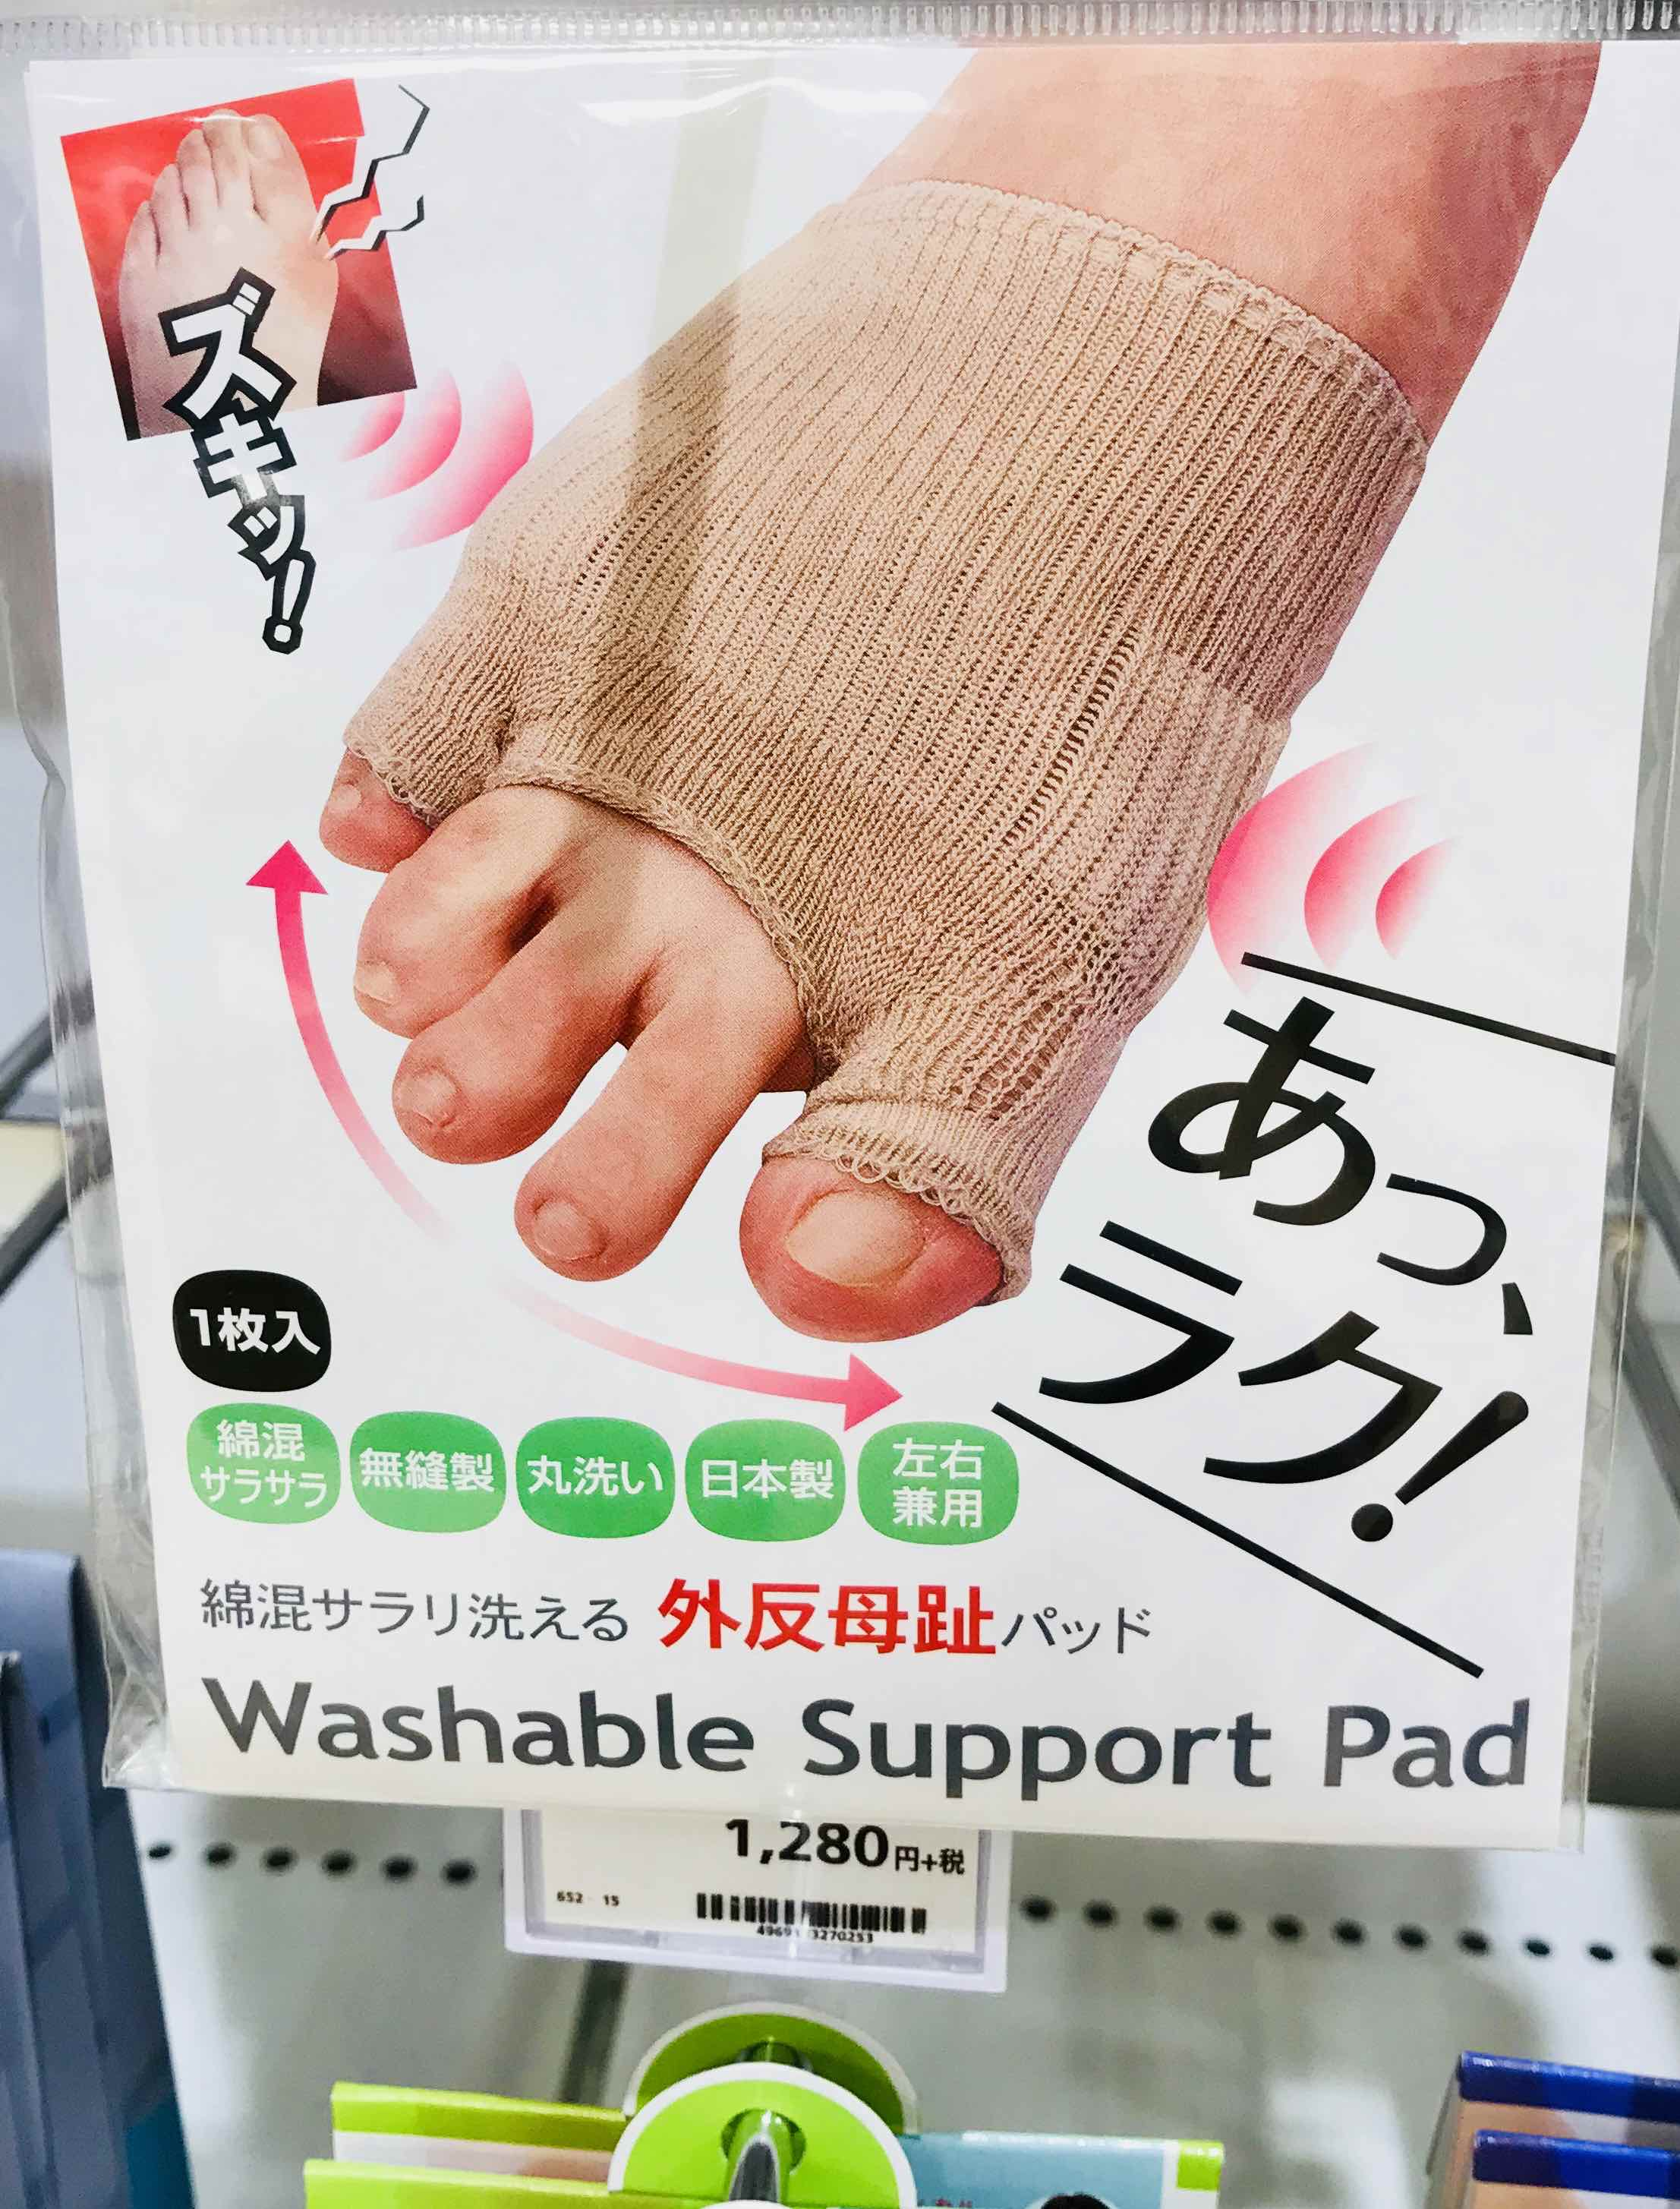 Washable bunion support